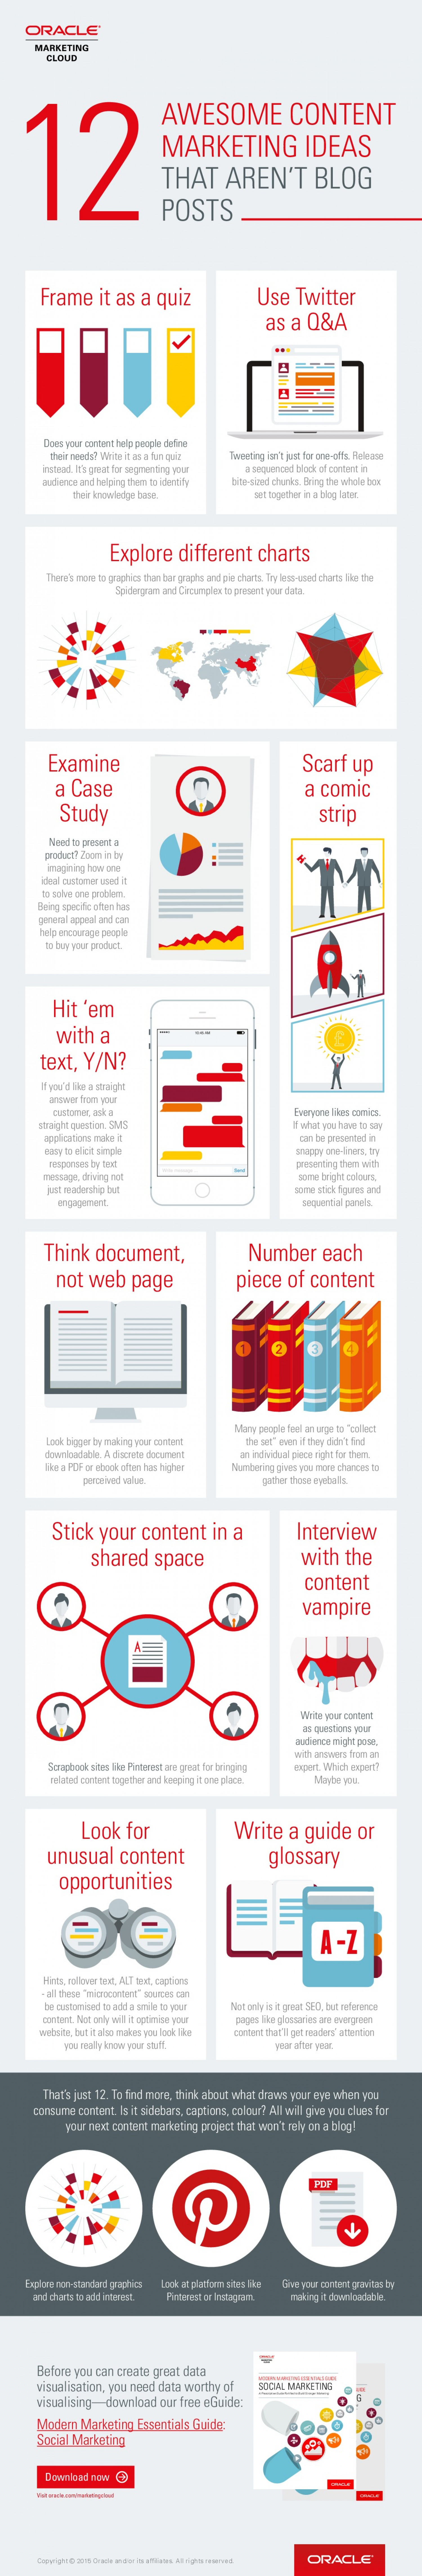 12 Awesome Content Marketing Ideas...That Aren't Blog Posts Infographic